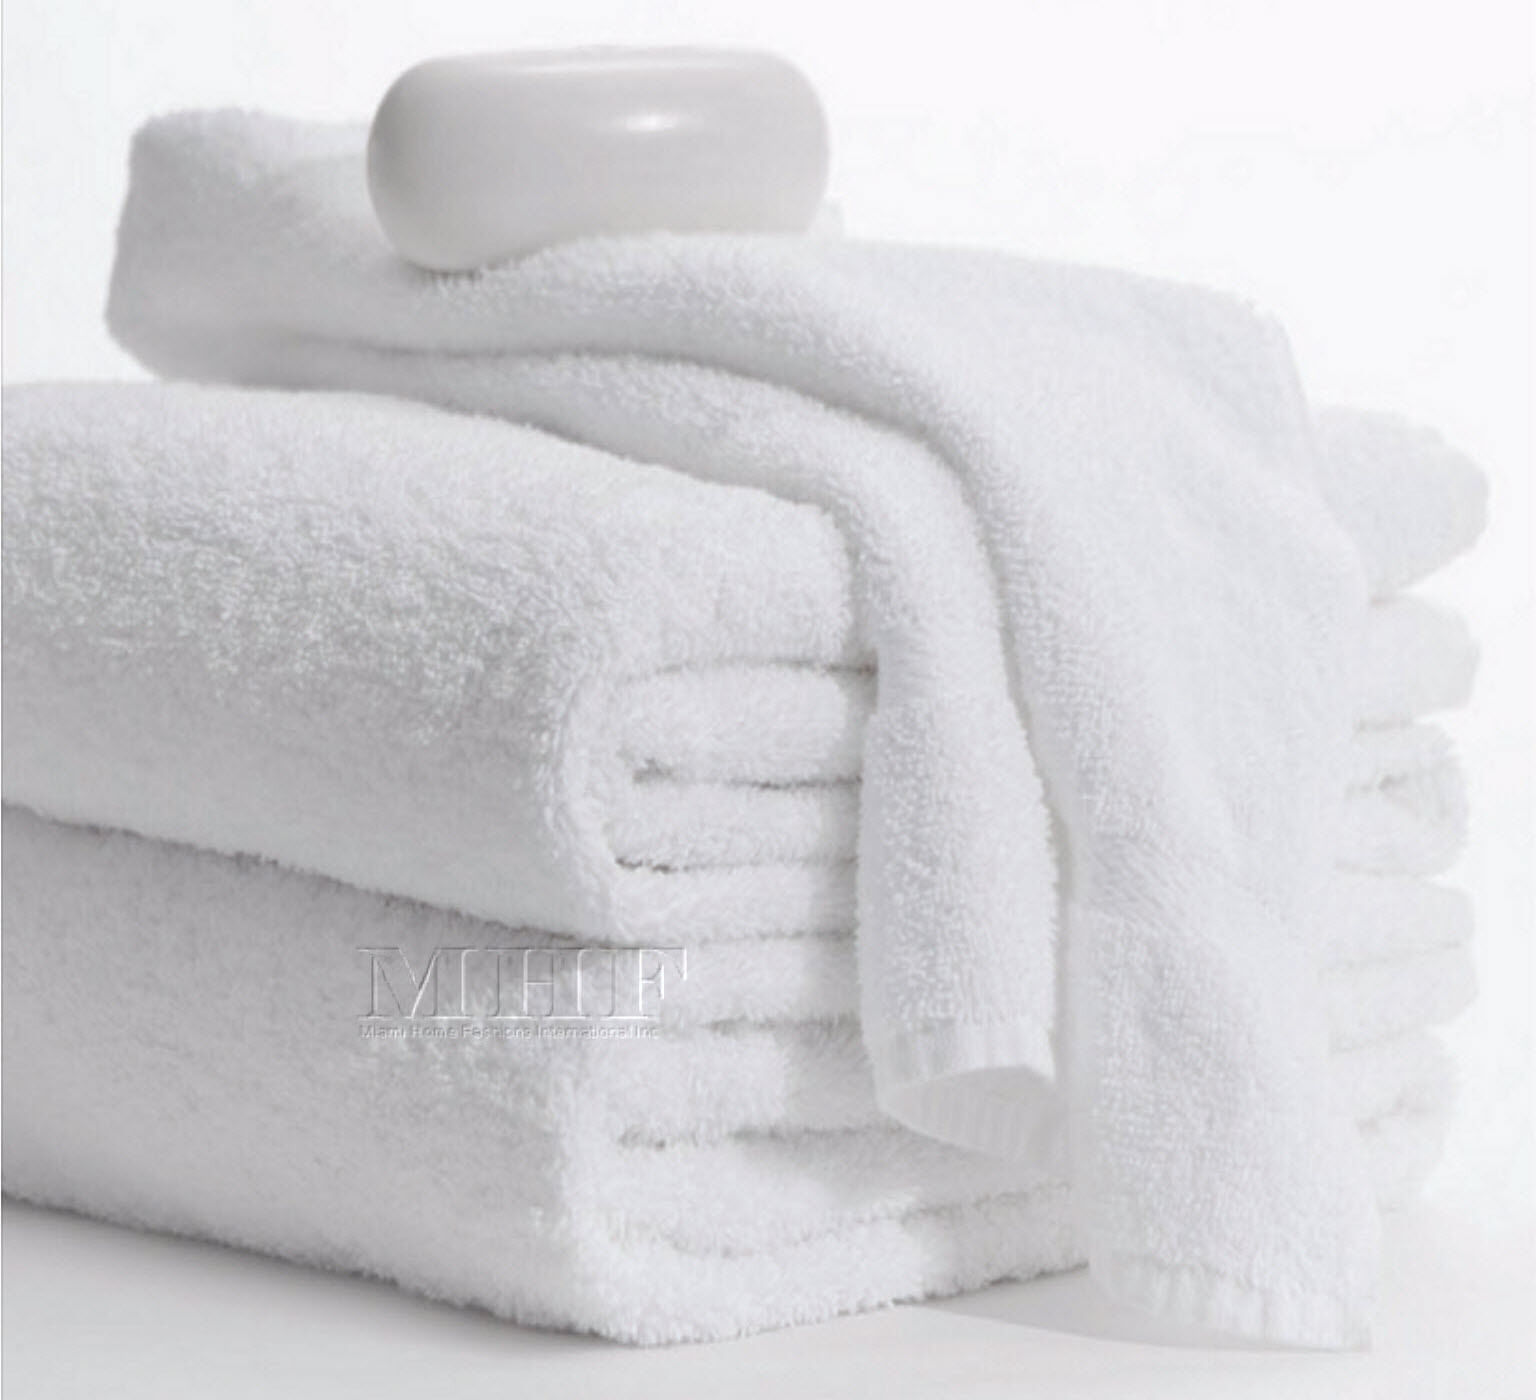 bath towels 12 pack 22x44 inches white